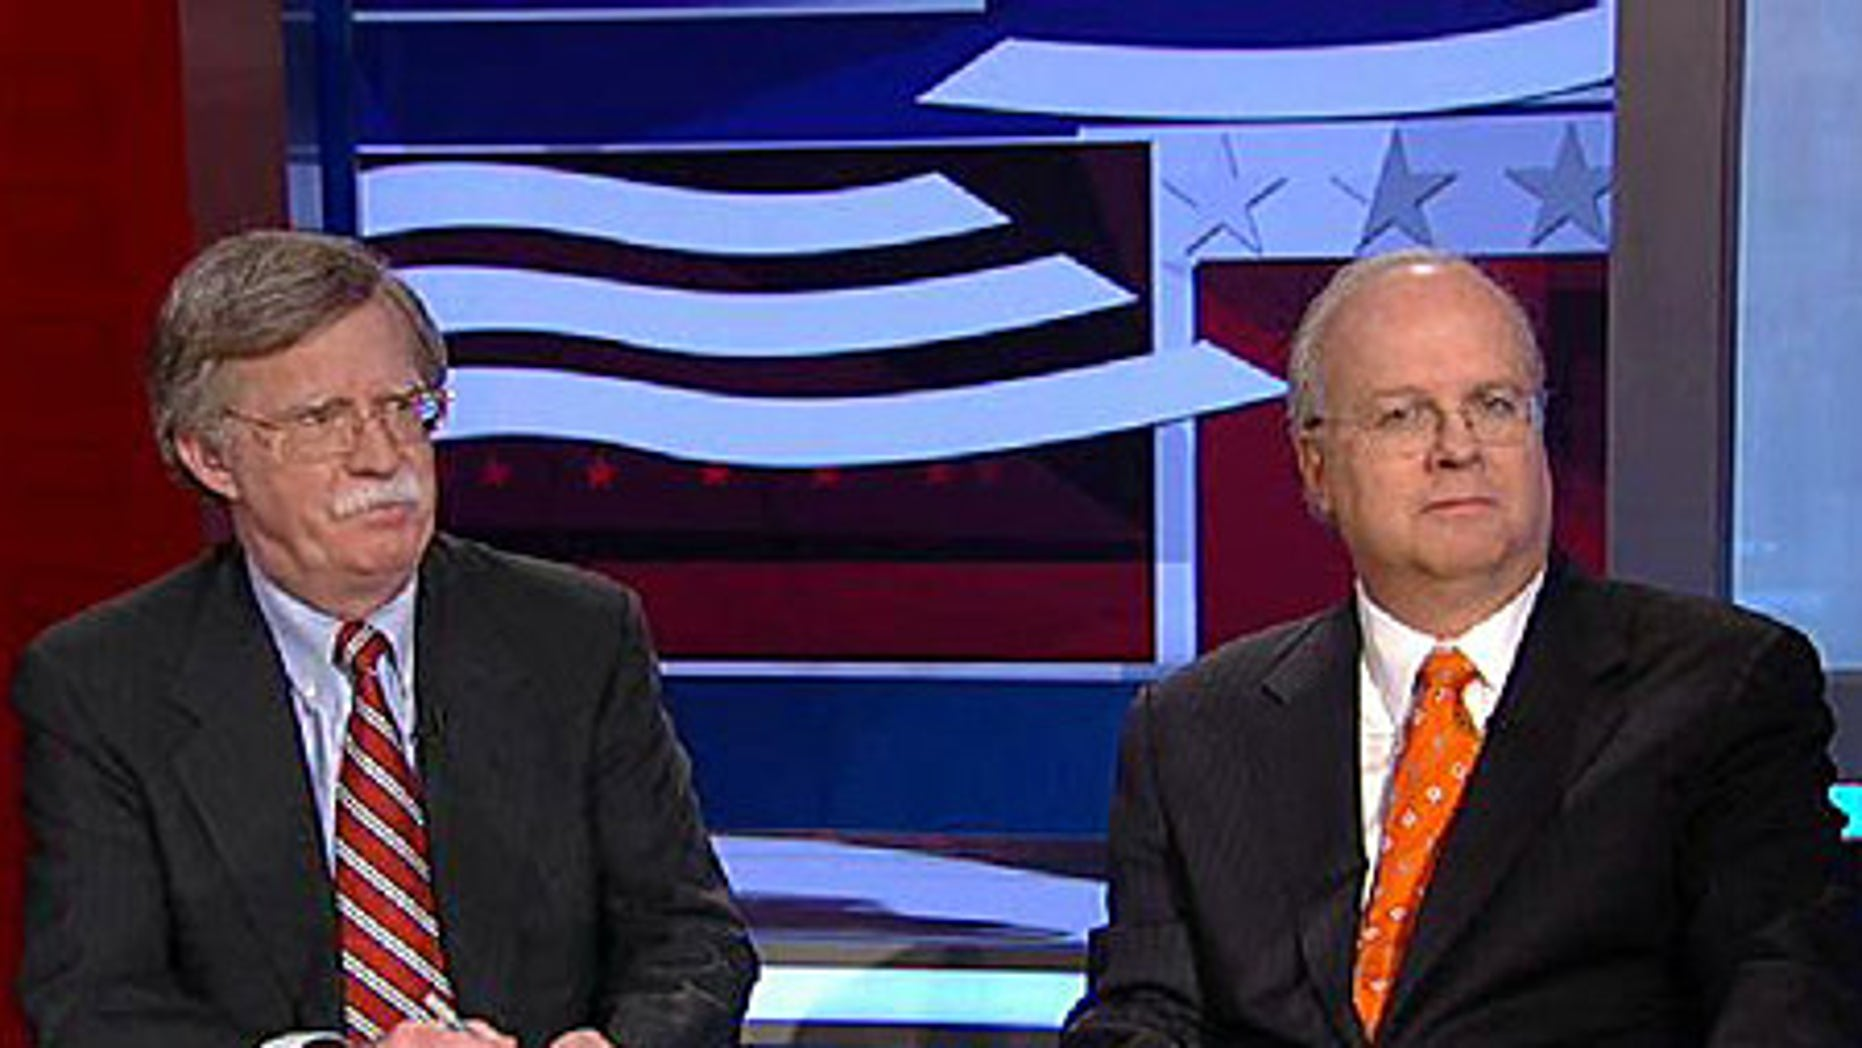 Live from the 'Death Star': Amb. John Bolton and Karl Rove